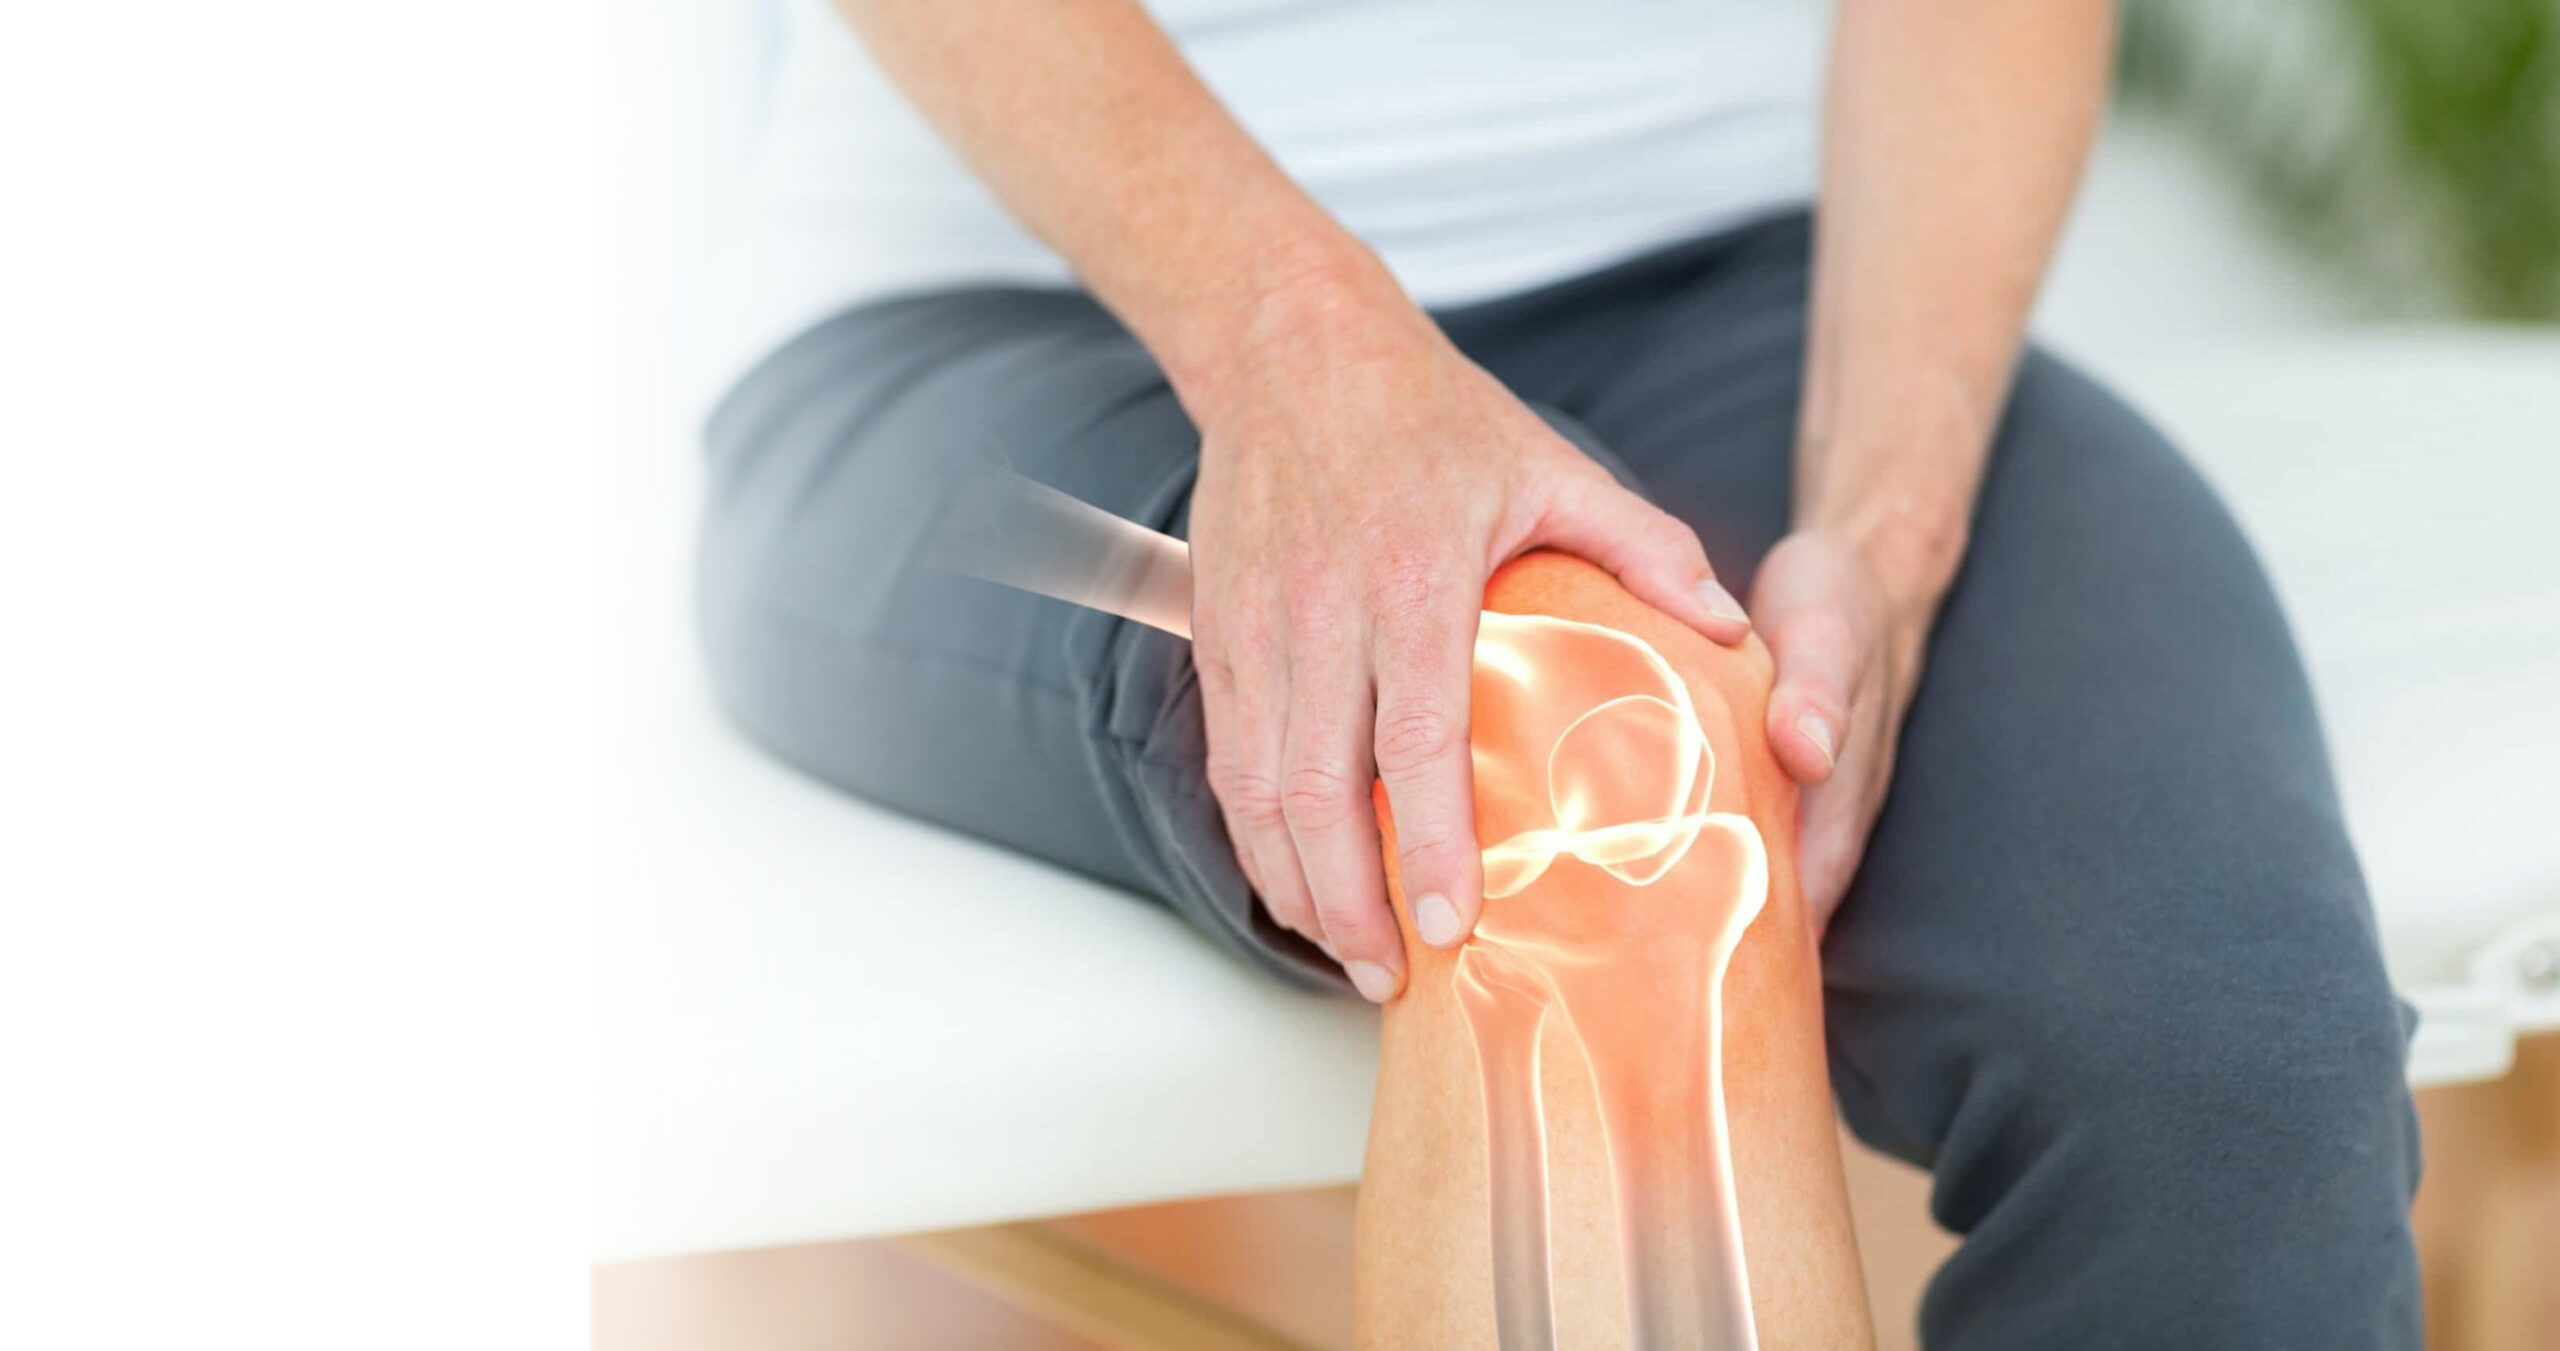 woman holding knee in pain due to osteoarthritis or arthritis